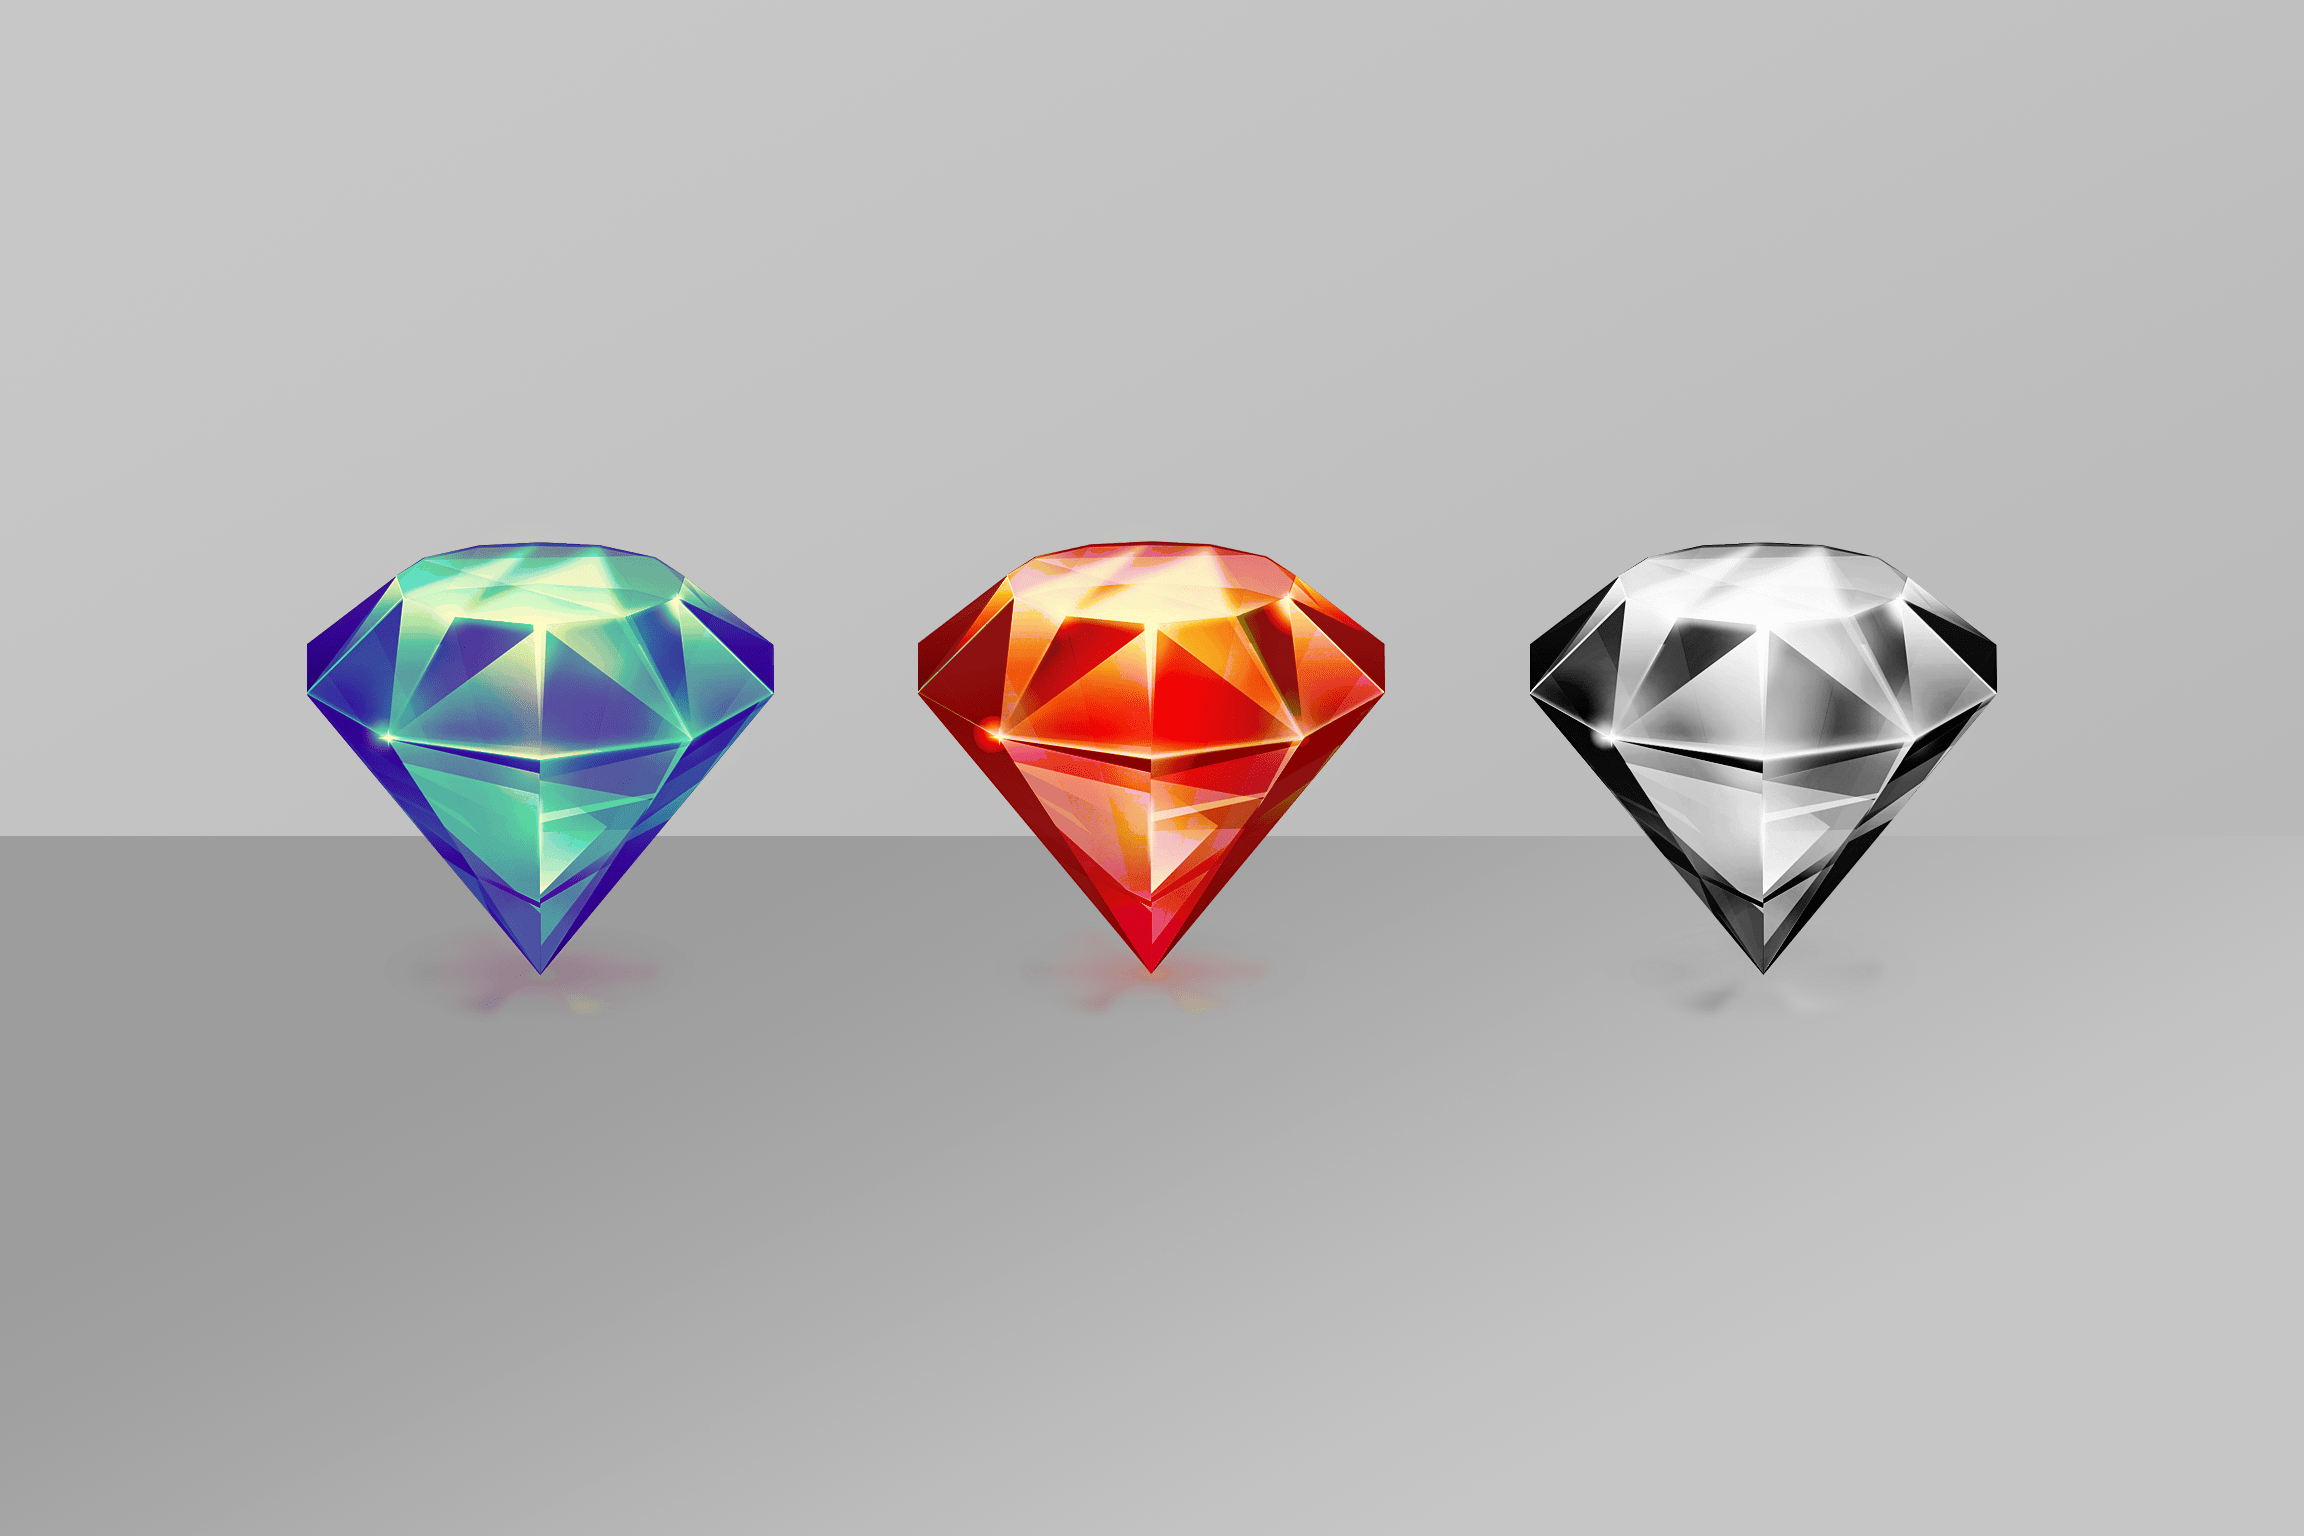 Three version of the original Sketch diamond, in different colors.